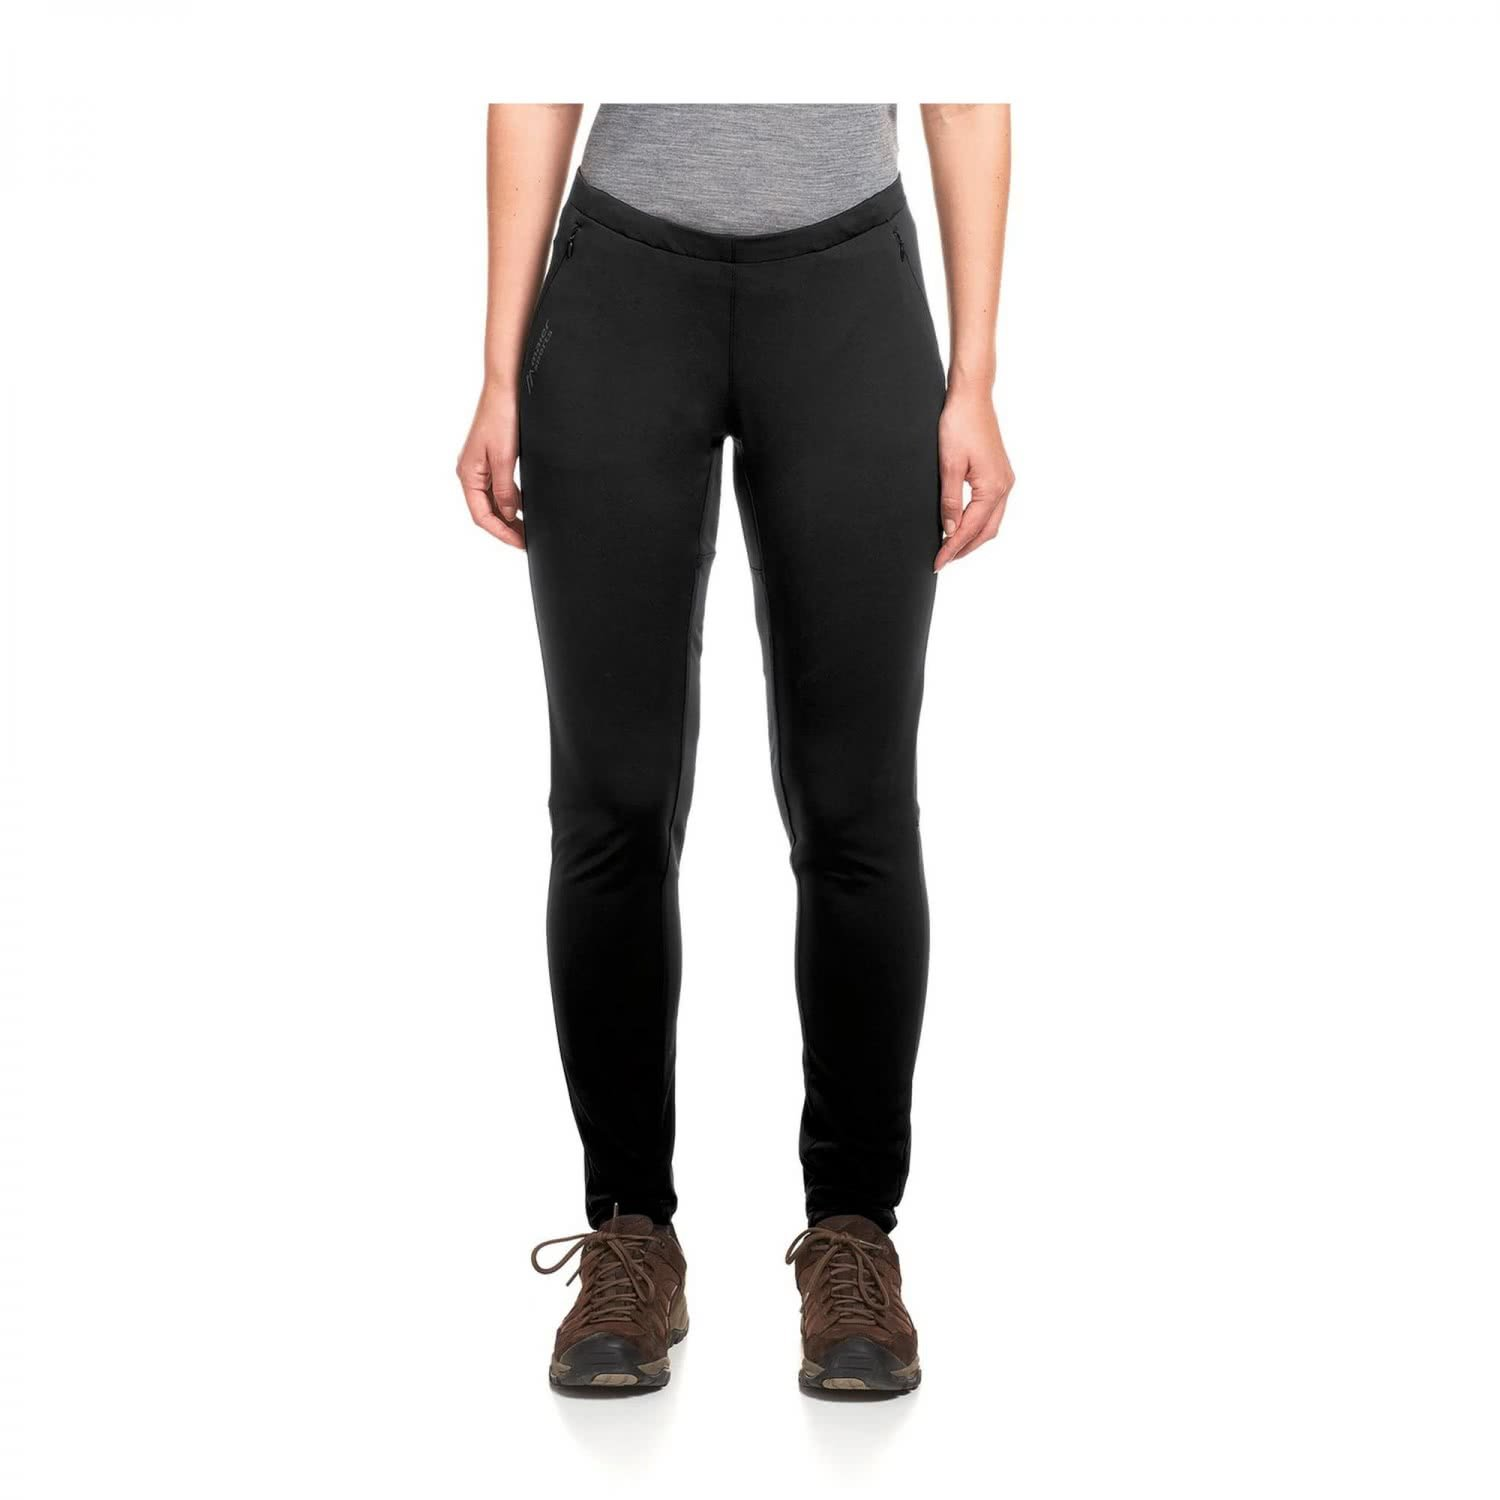 Maier Sports Damen Ophit W Trekking Tight